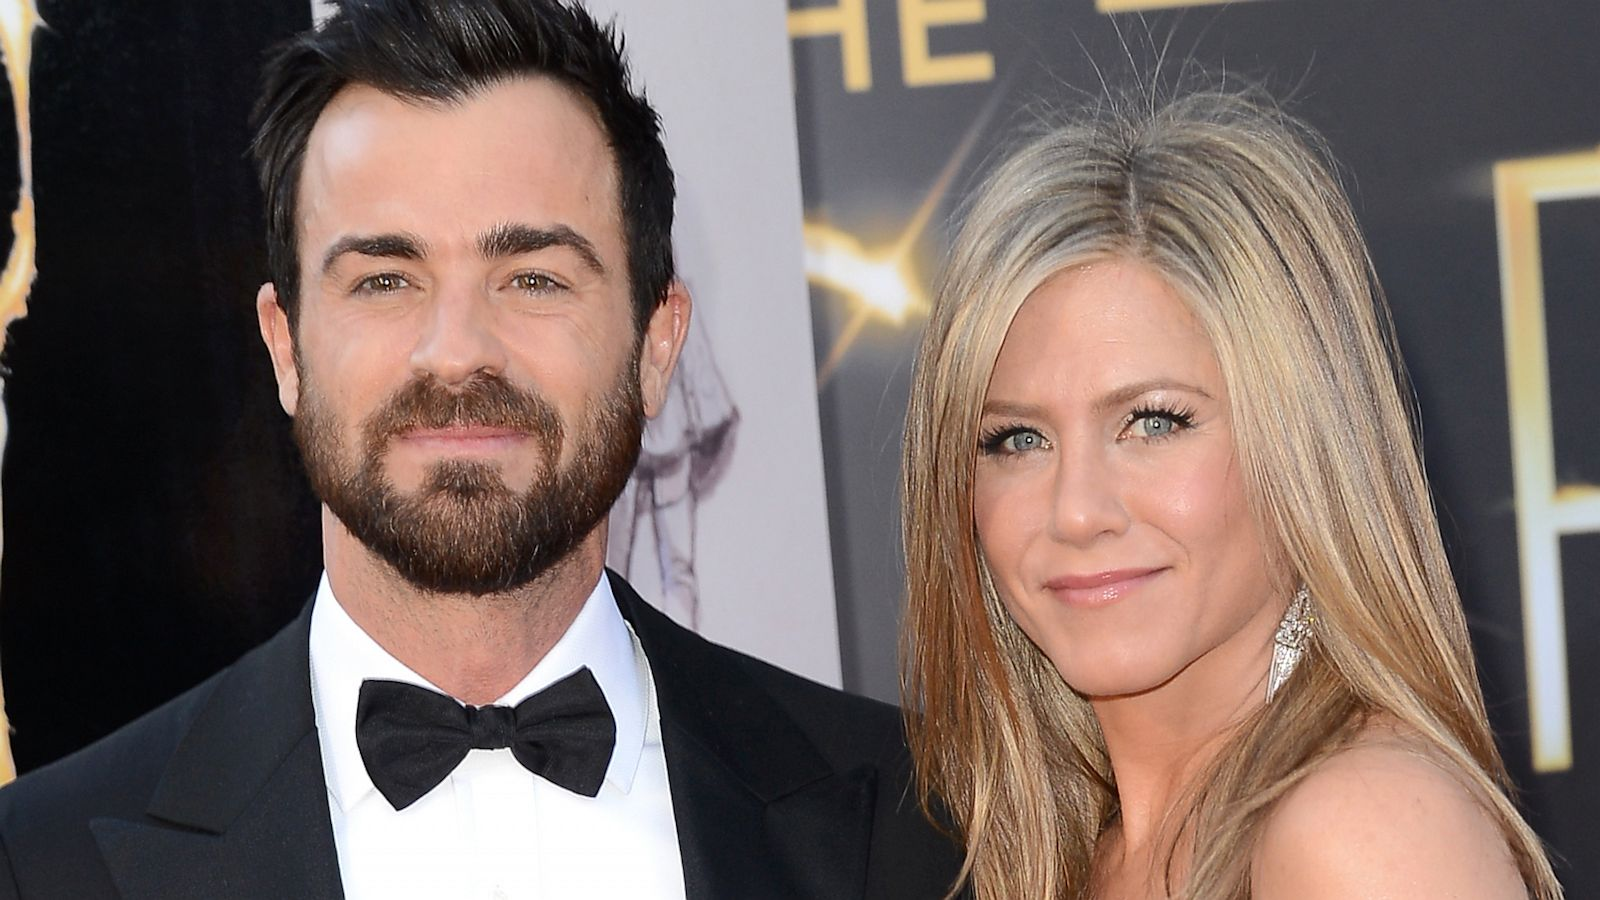 Jennifer Aniston Wants to Wed Justin Theroux 'When It's